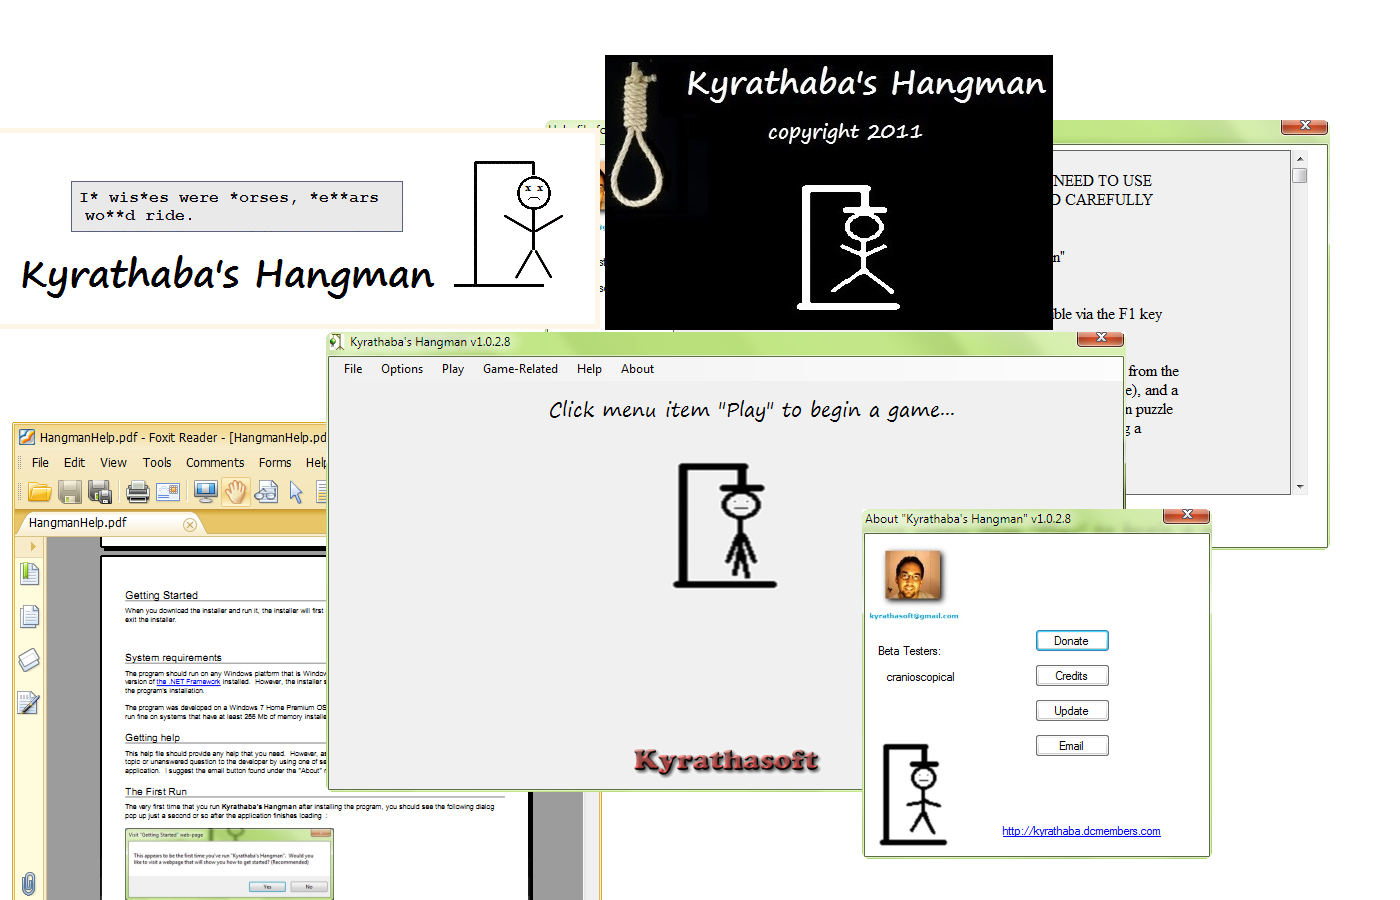 Kyrathaba's Hangman Download